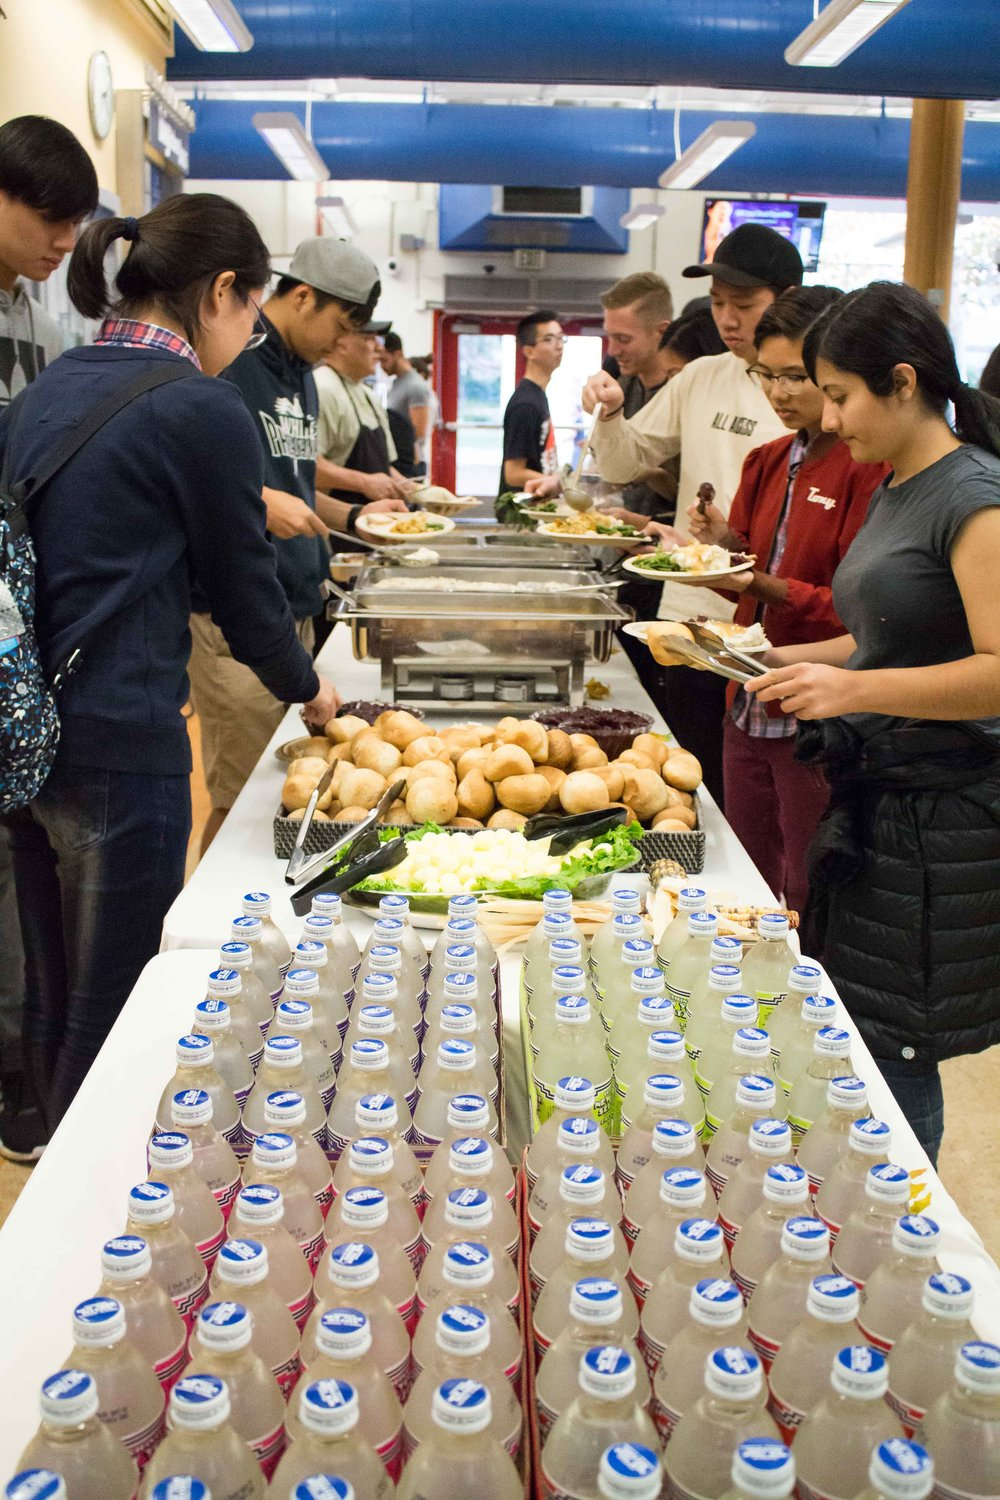 Santa Monica College students serve themselves their Thanksgiving meal provided by the Associated Students of Santa Monica and the Asian Culture Exchange Association at the Santa Monica College cafeteria in Santa Monica, CA on Nov. 22, 2016. (Marisa Vasquez)